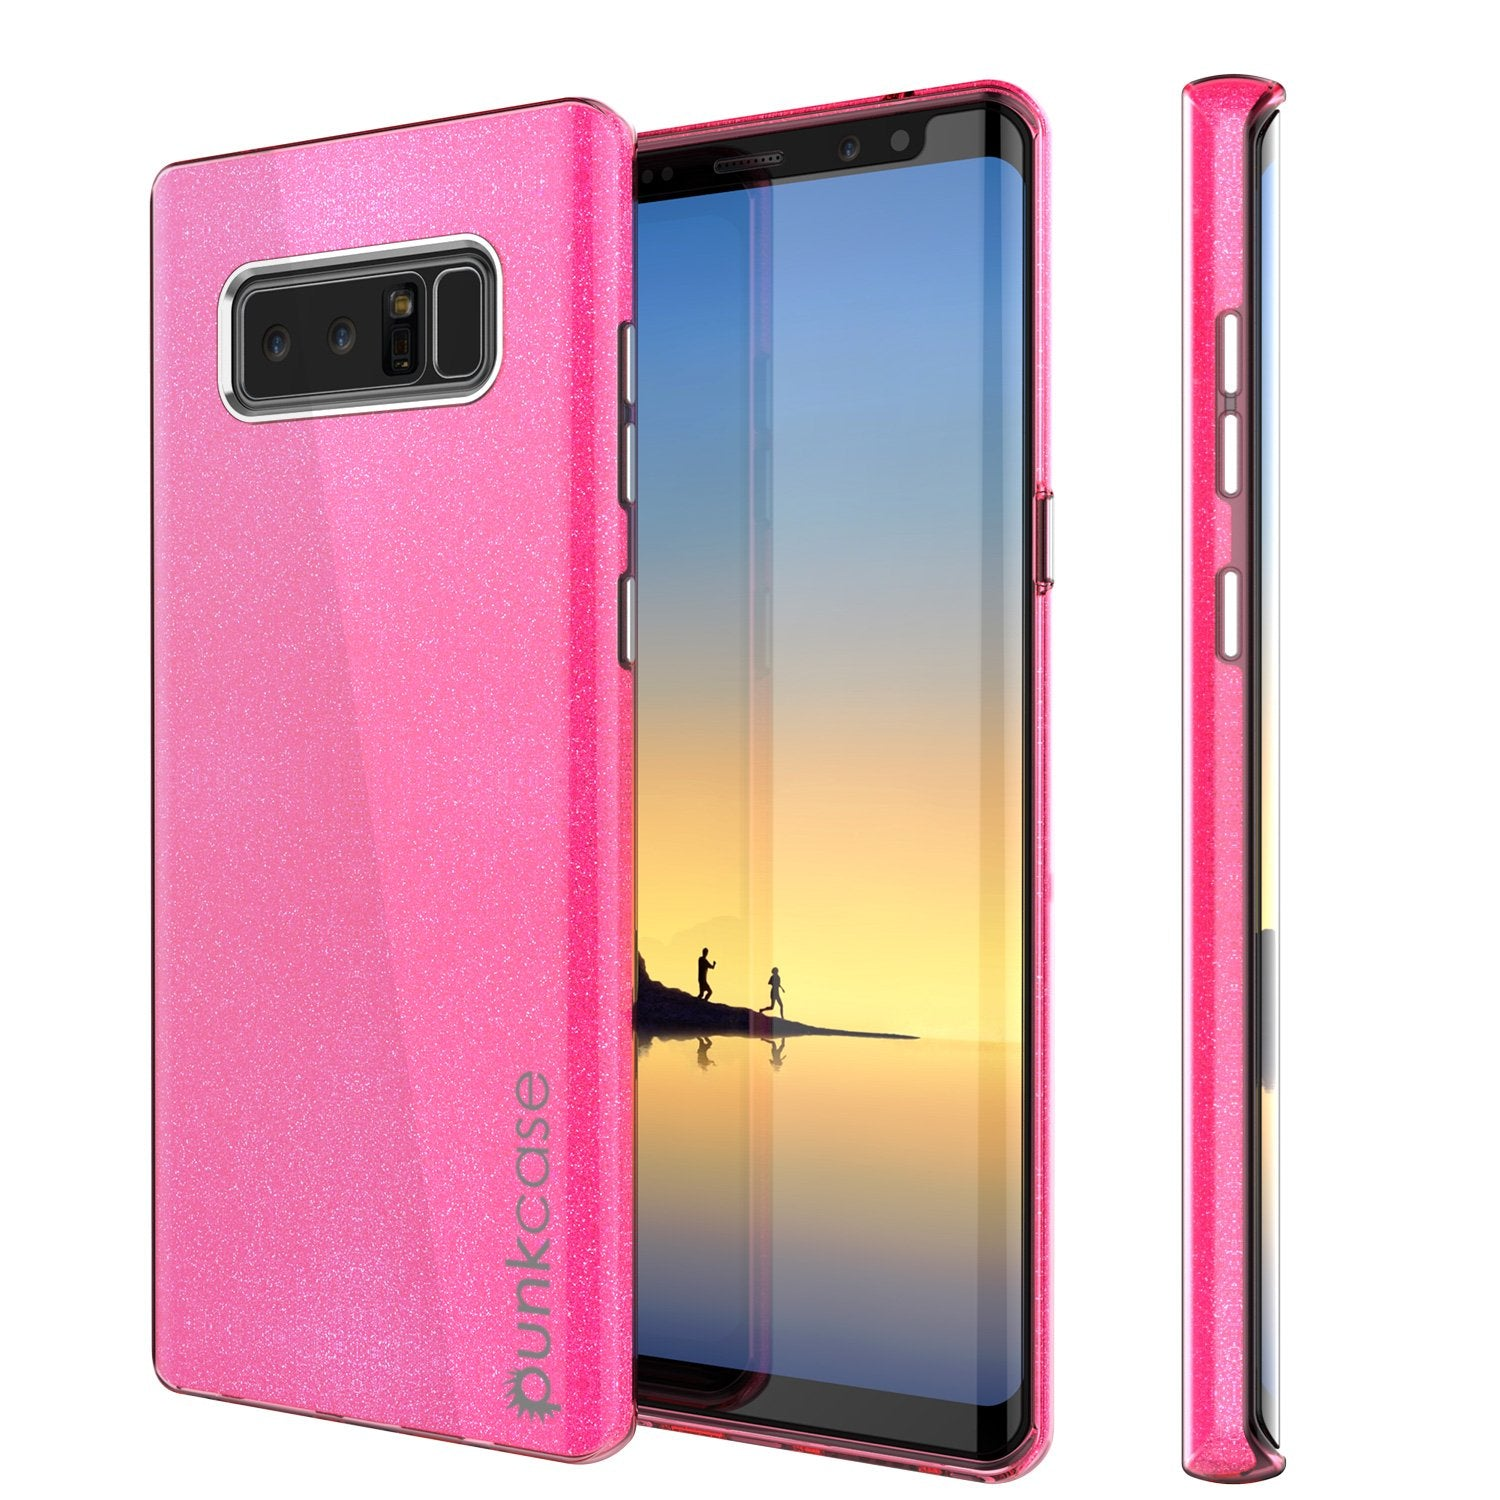 Galaxy Note 8 Case, Punkcase Galactic 2.0 Series Ultra Slim [Pink]